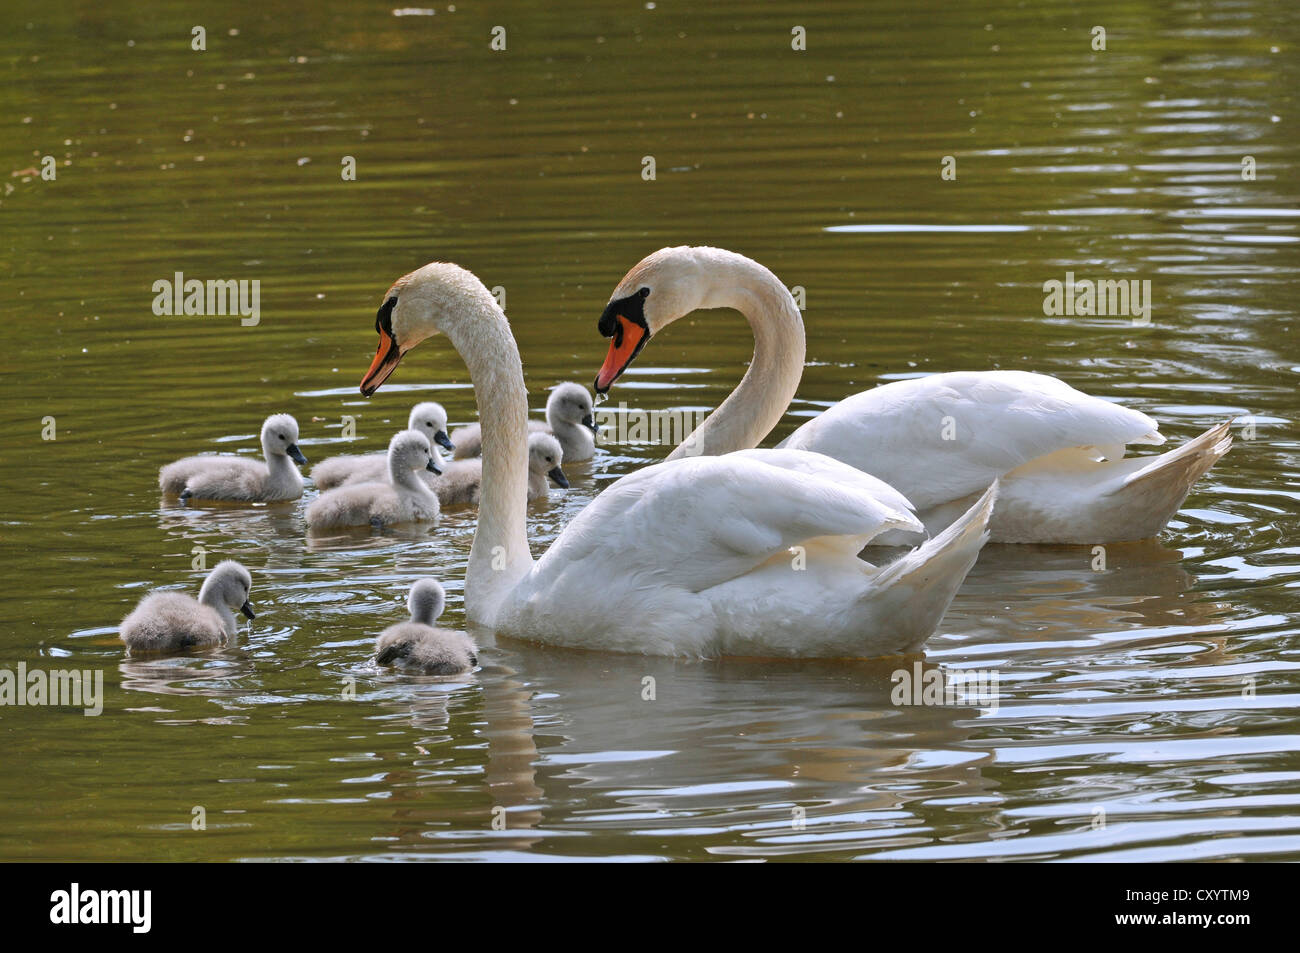 Mute Swans (Cygnus olor), two adult birds with chicks, Plothener Ponds, Thuringia - Stock Image